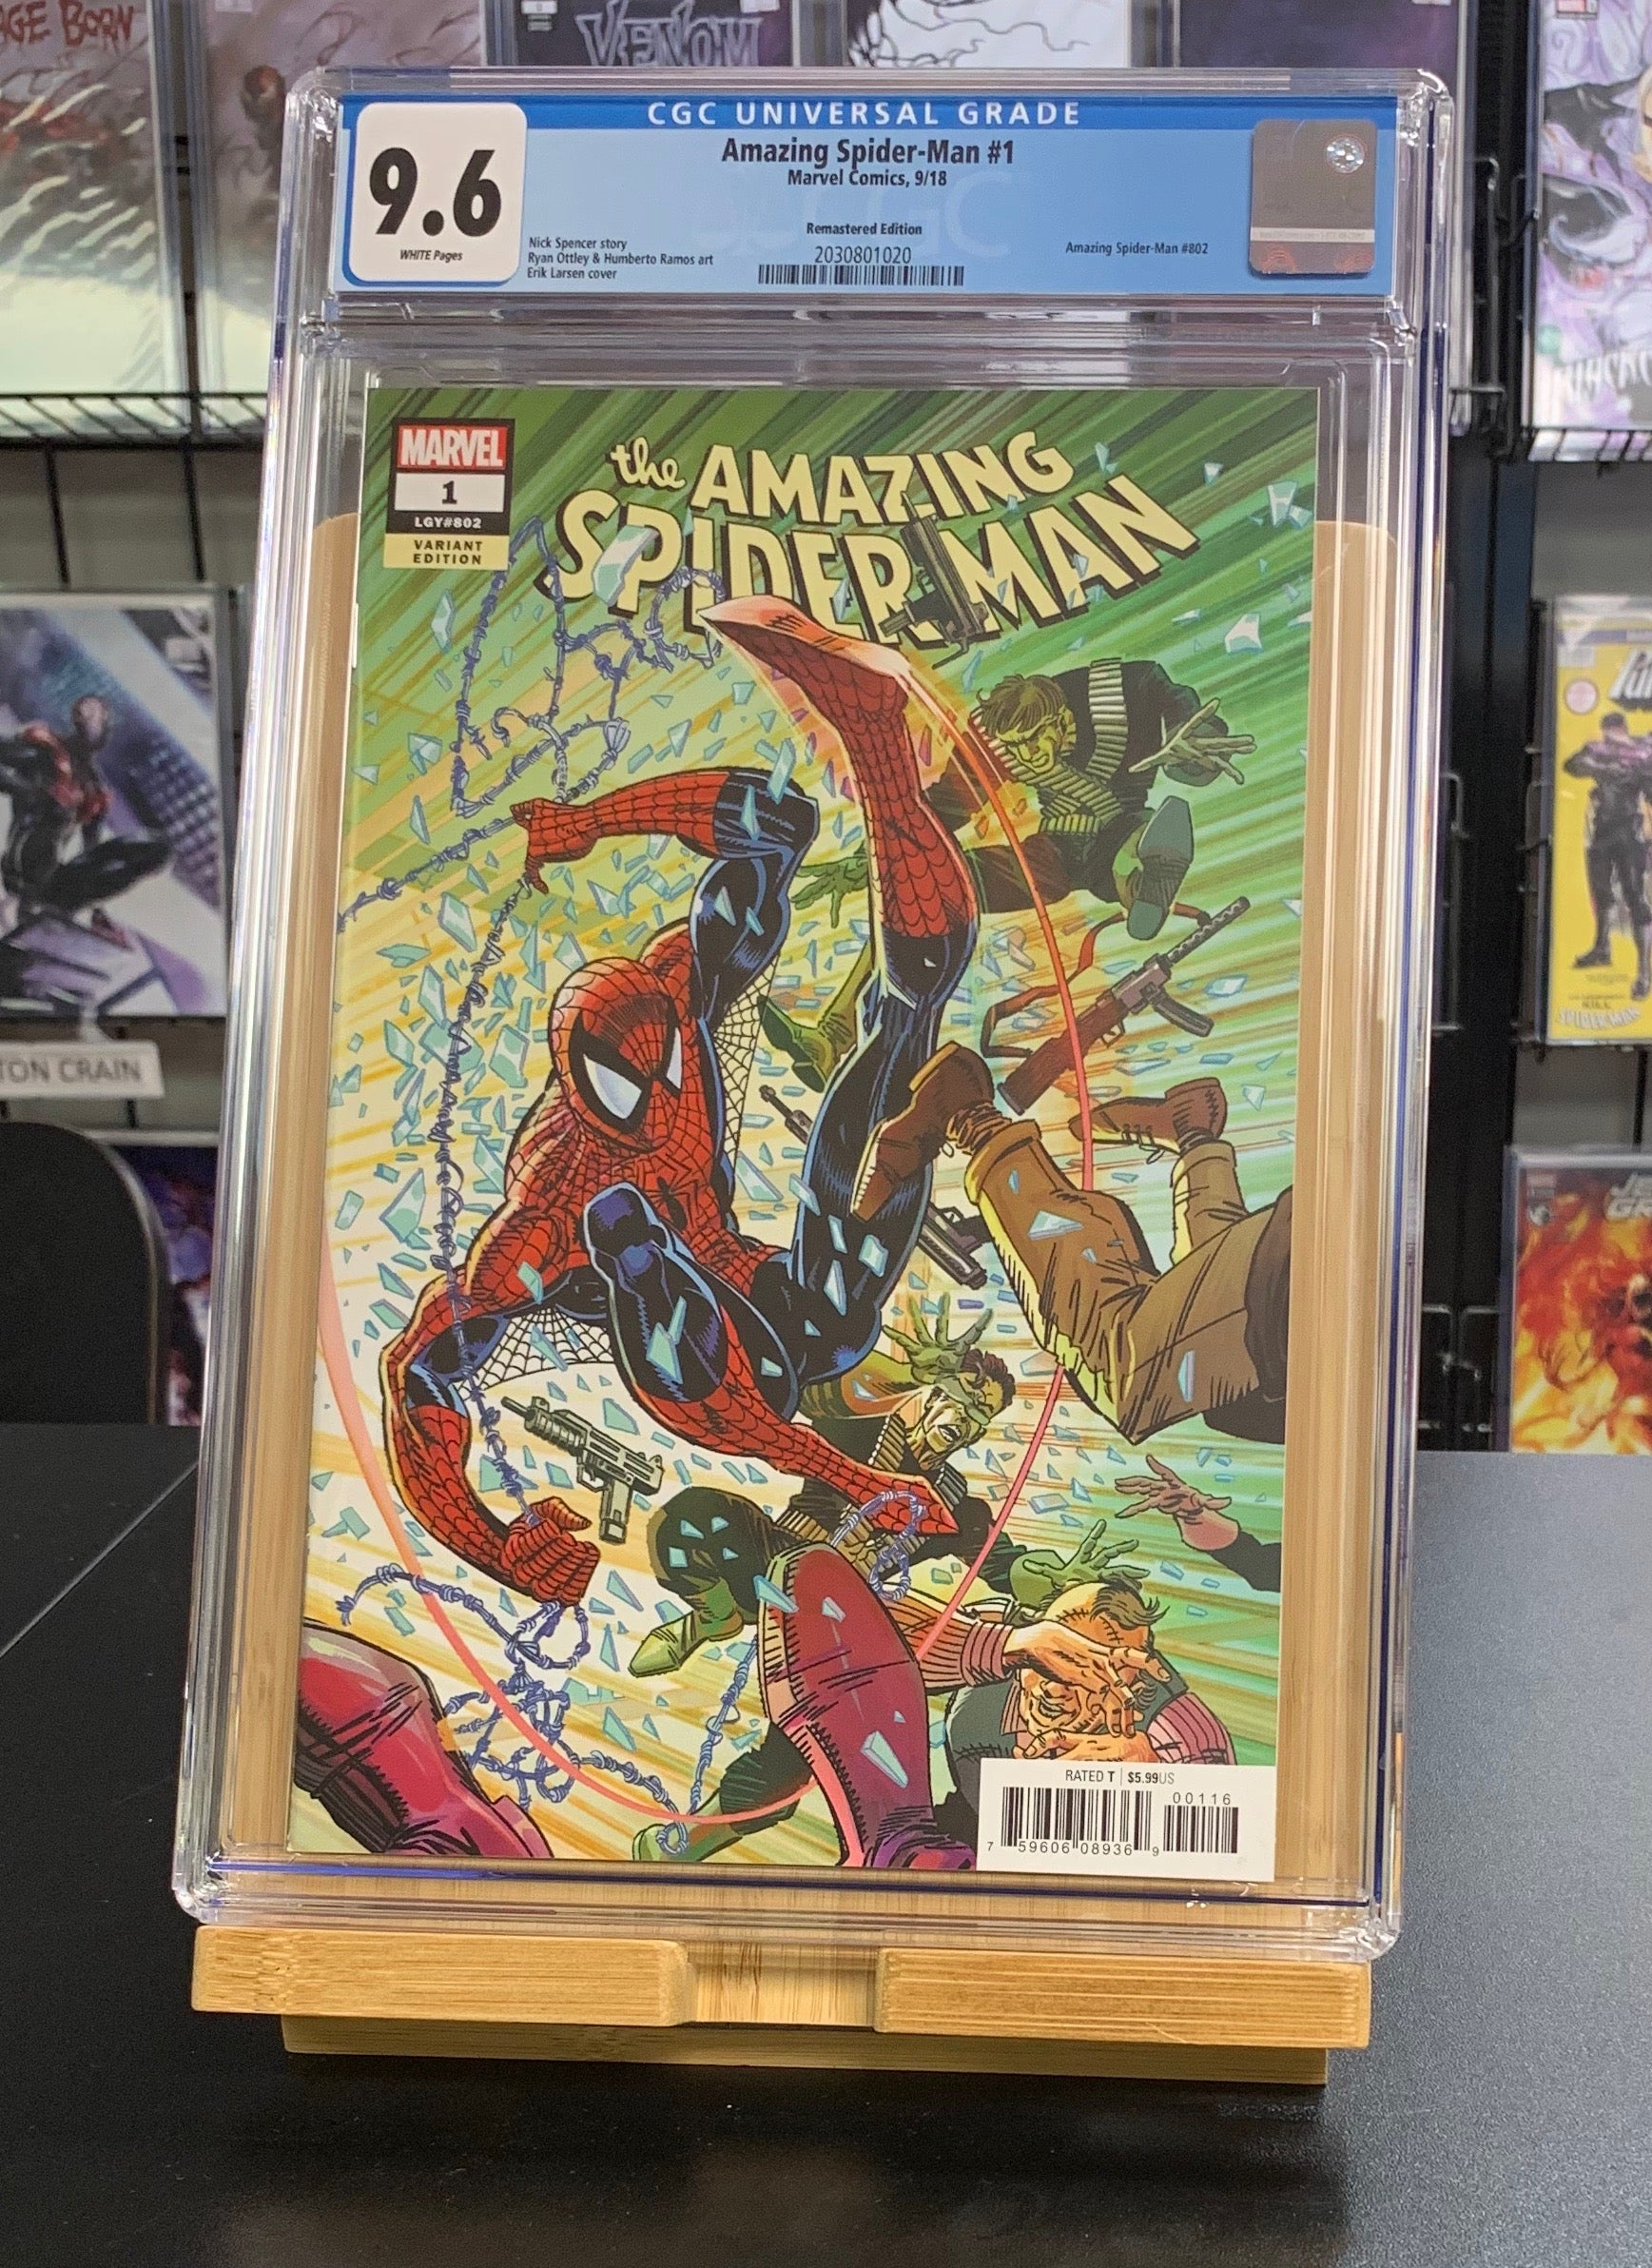 9.6 CGC Amazing Spider-Man #1 1:1000 Remastered Variant 1st Kindred Marvel 2018